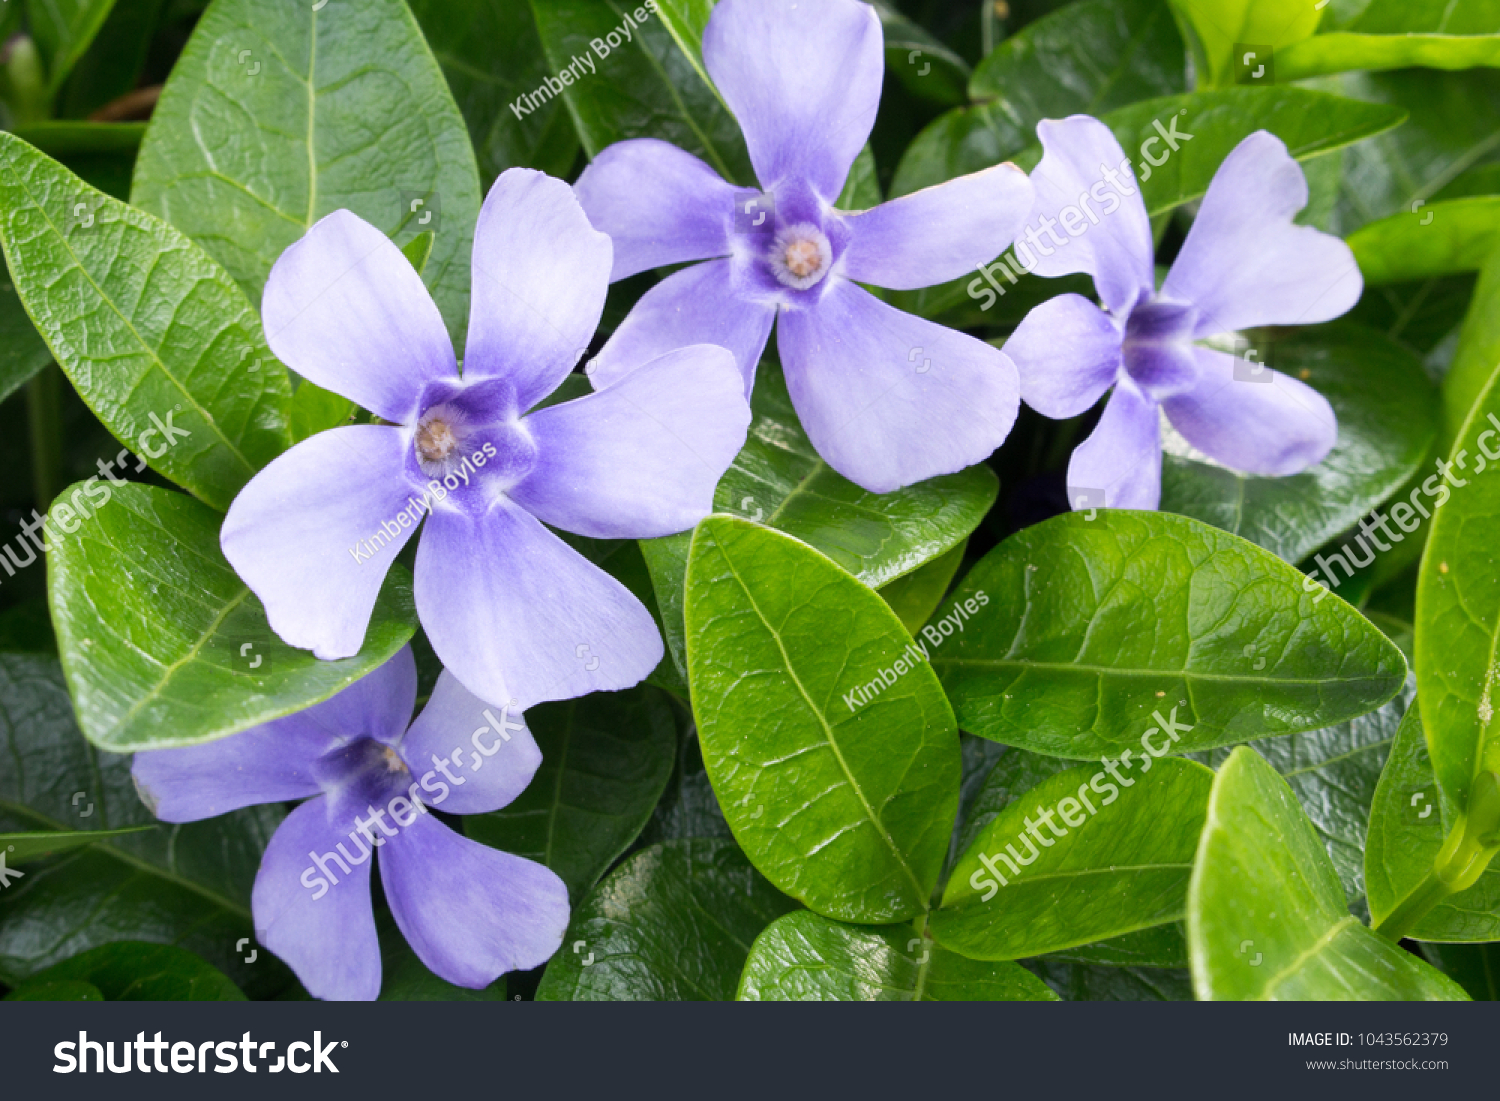 Vinca minor blooming ground cover lavender stock photo royalty free vinca minor blooming ground cover with lavender blue flowers and green leaves apocynaceae is a izmirmasajfo